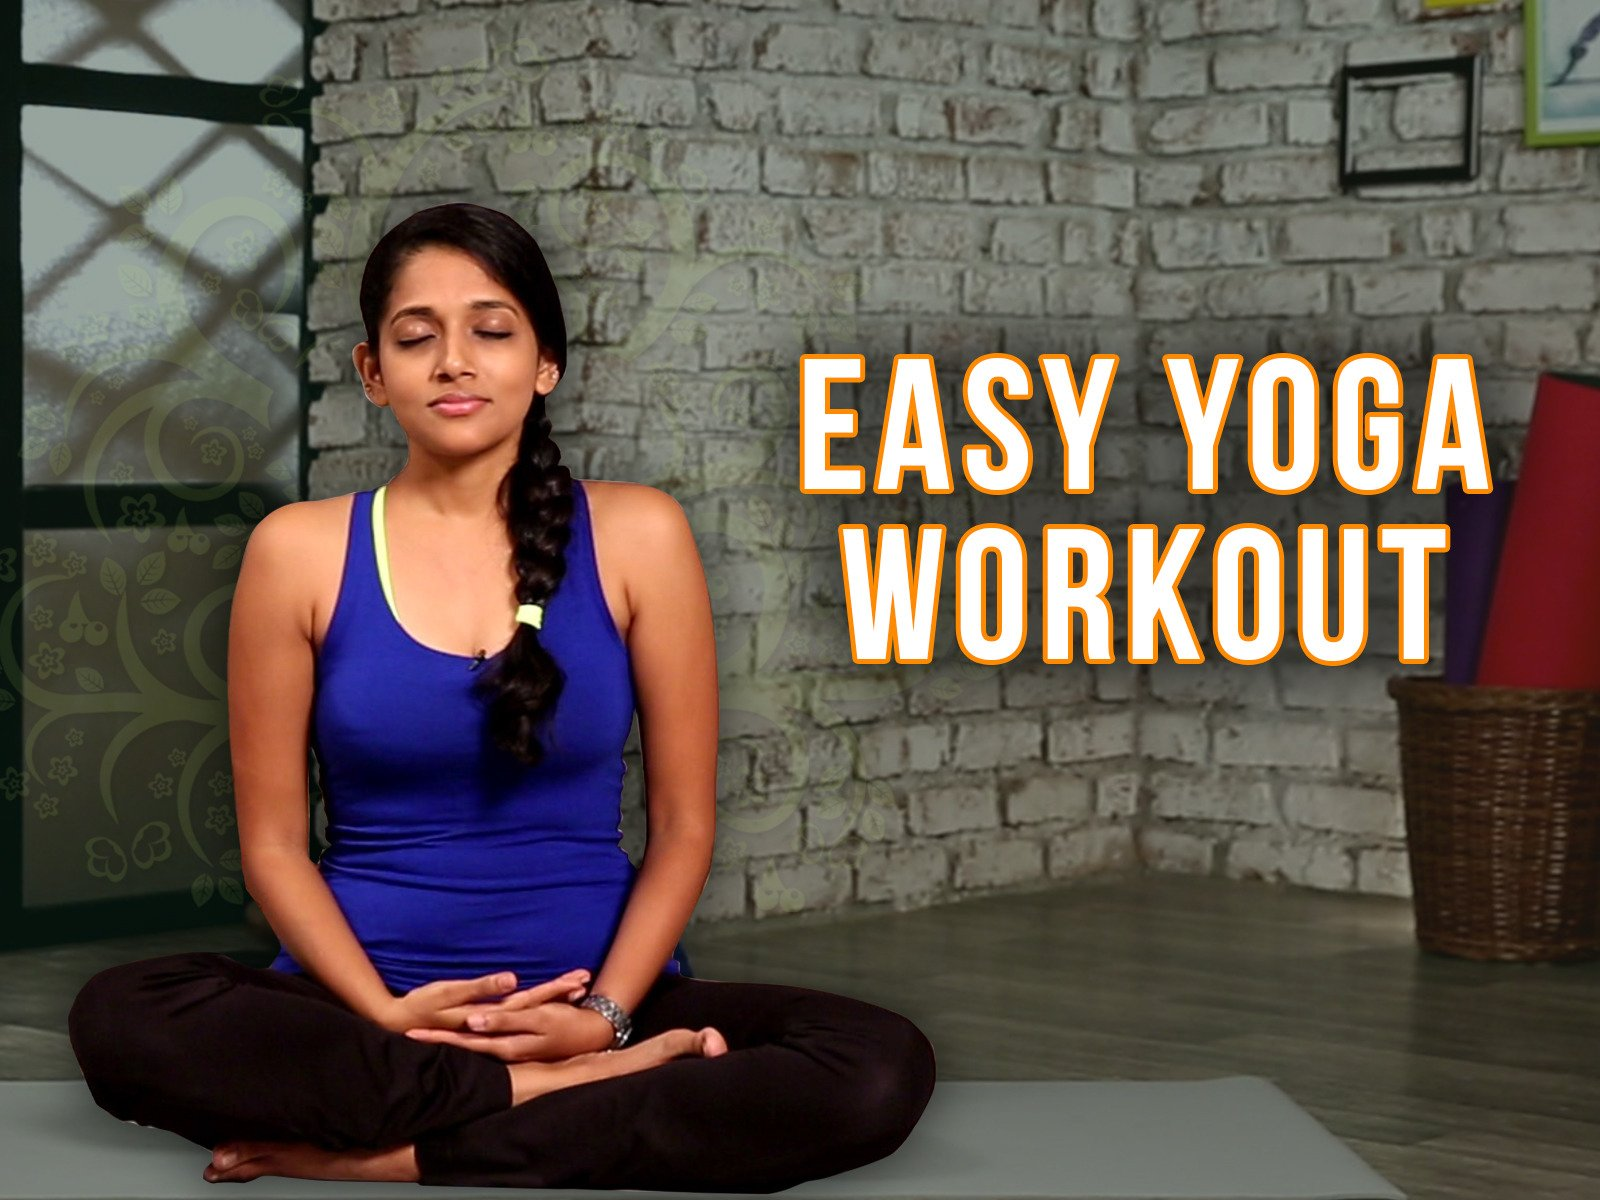 Clip: Easy Yoga Workout - Season 1